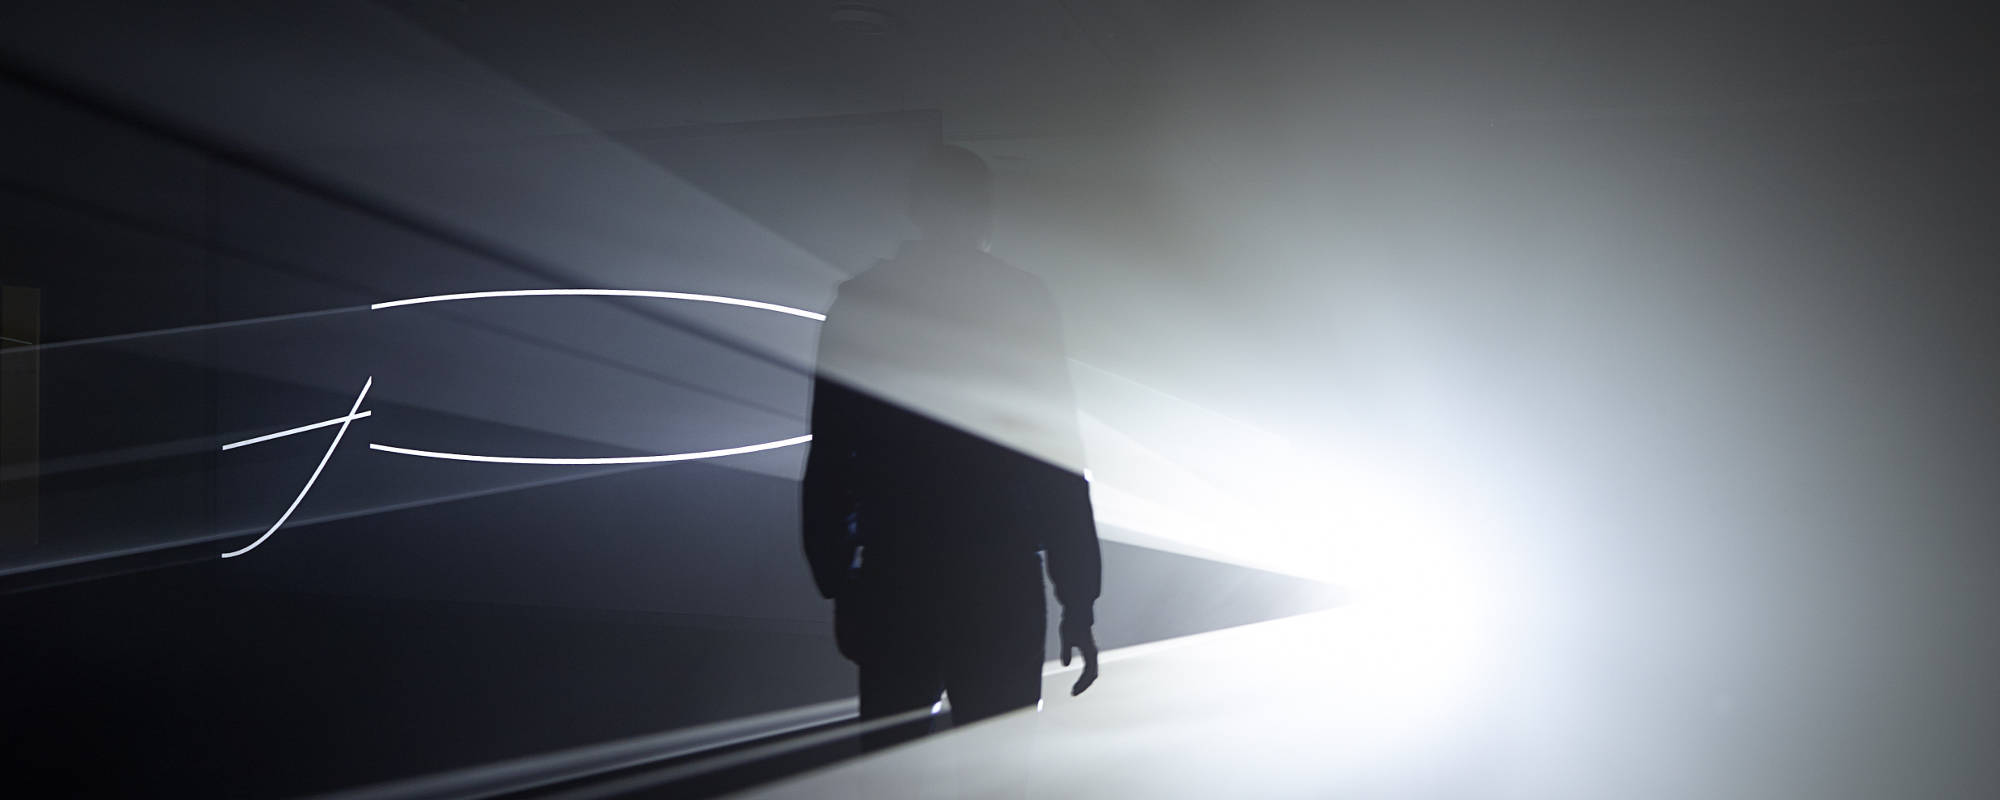 Anthony McCall Solid Light Works & Anthony McCall: Solid Light Works - The Hepworth Wakefield